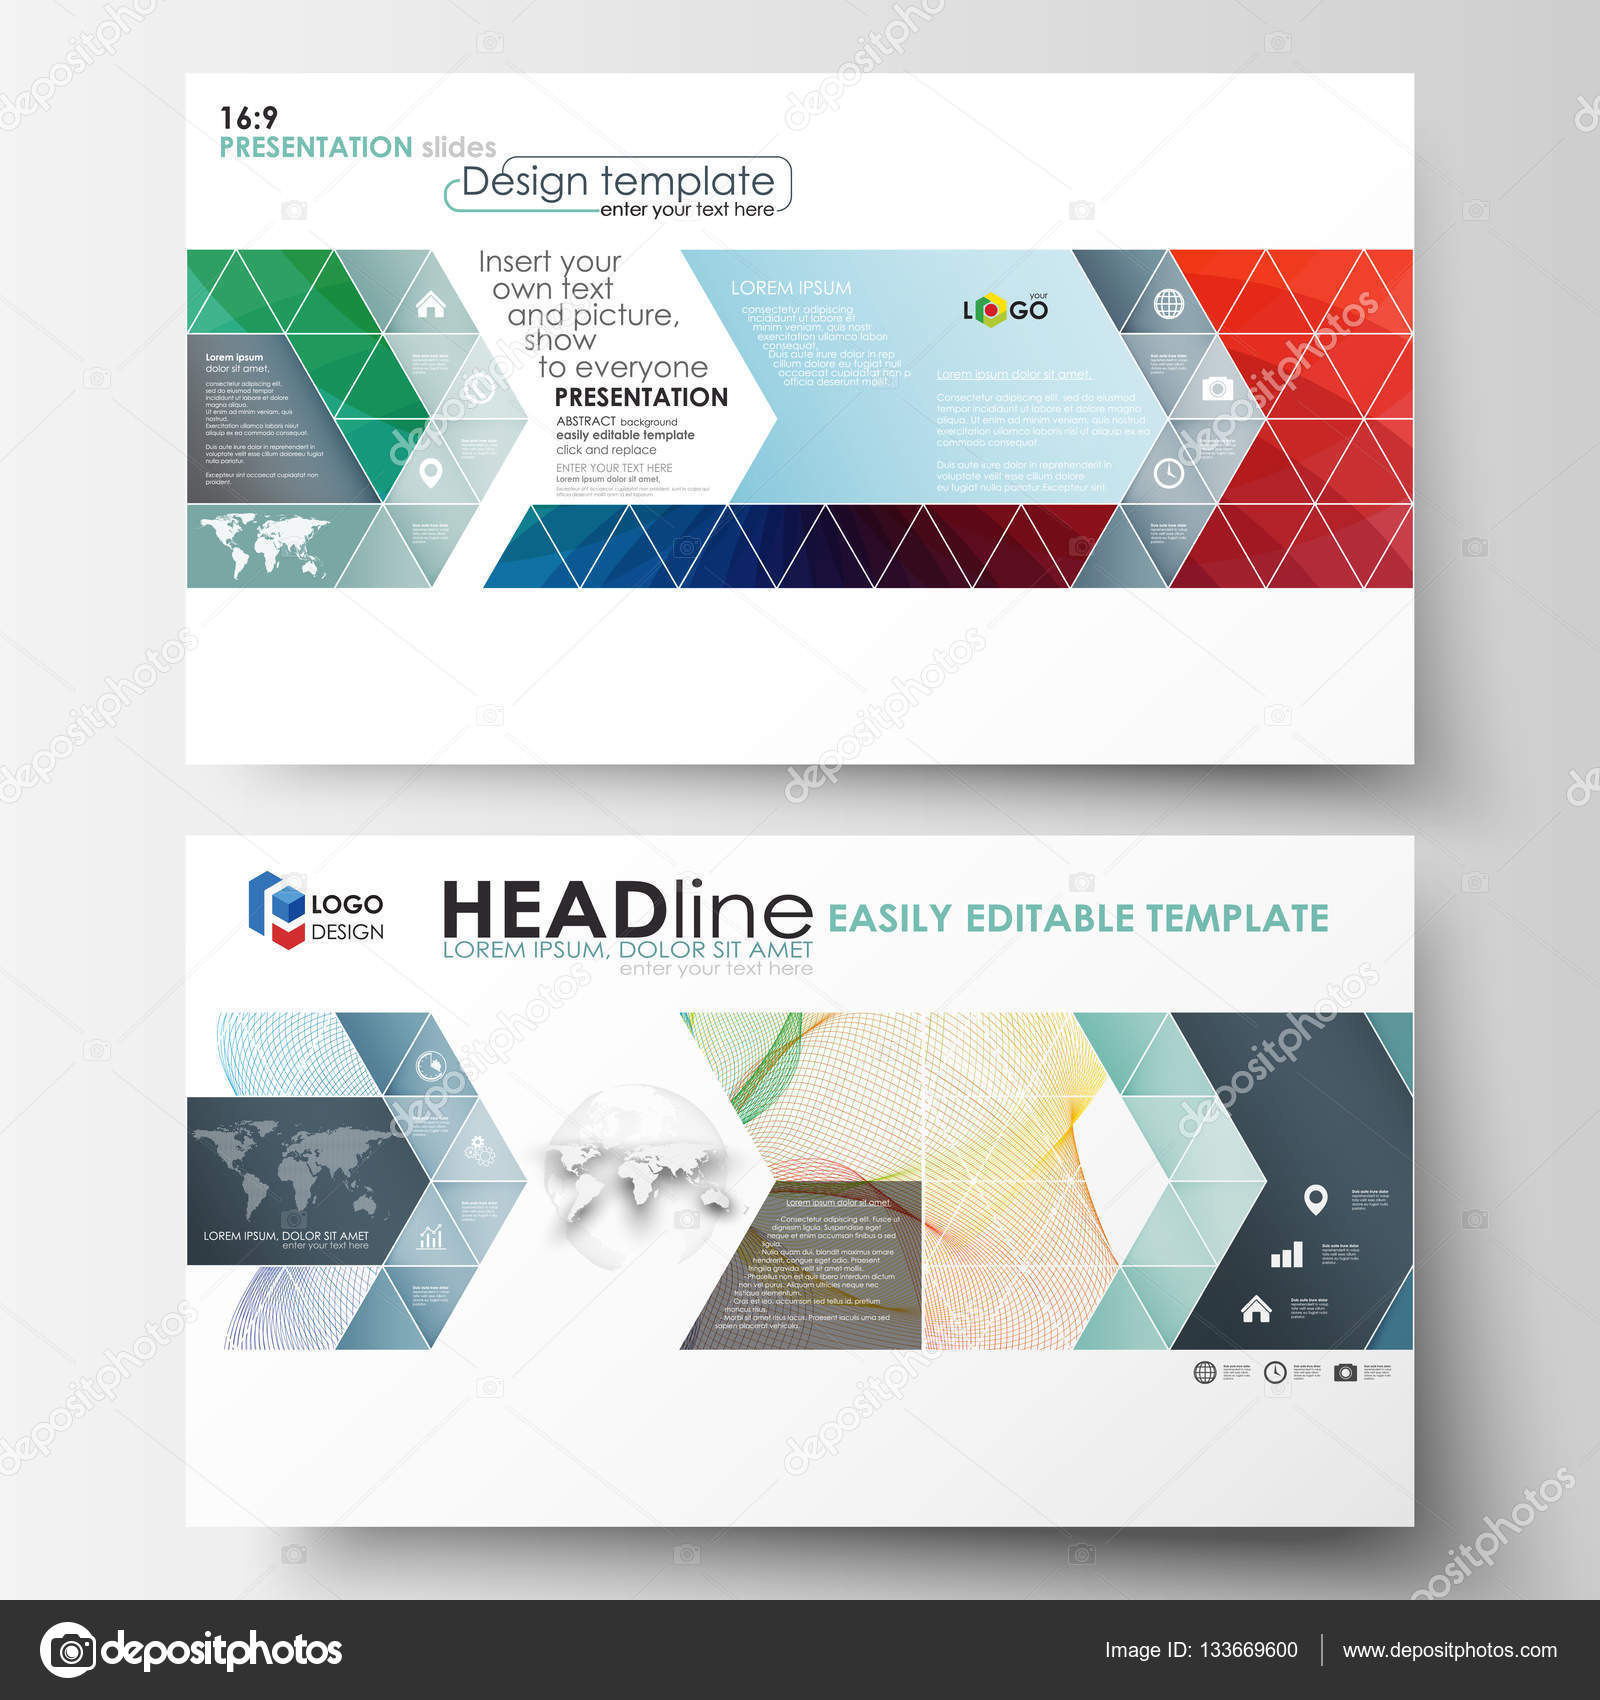 Business templates in HD format for presentation slides Easy